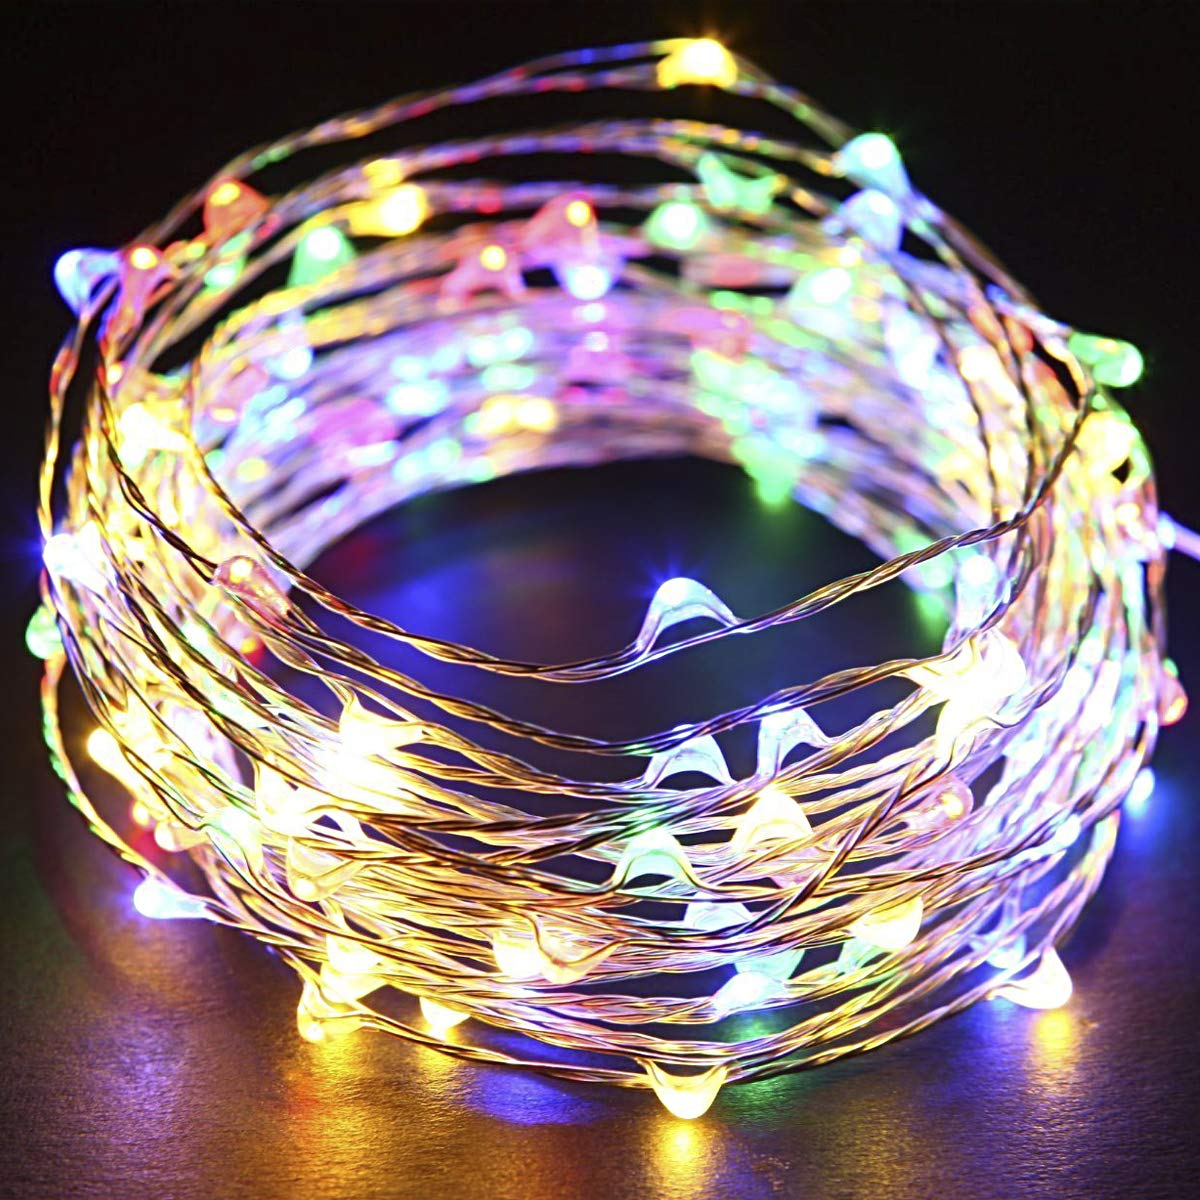 2 Pack 100 LED Solar Fairy Lights Waterproof Outdoor String Lights 33ft Copper Wire Lights for Patio Lawn Garden Gate Yard Party Wedding Christmas Decoration,Cool White Solarmks Solar String Lights